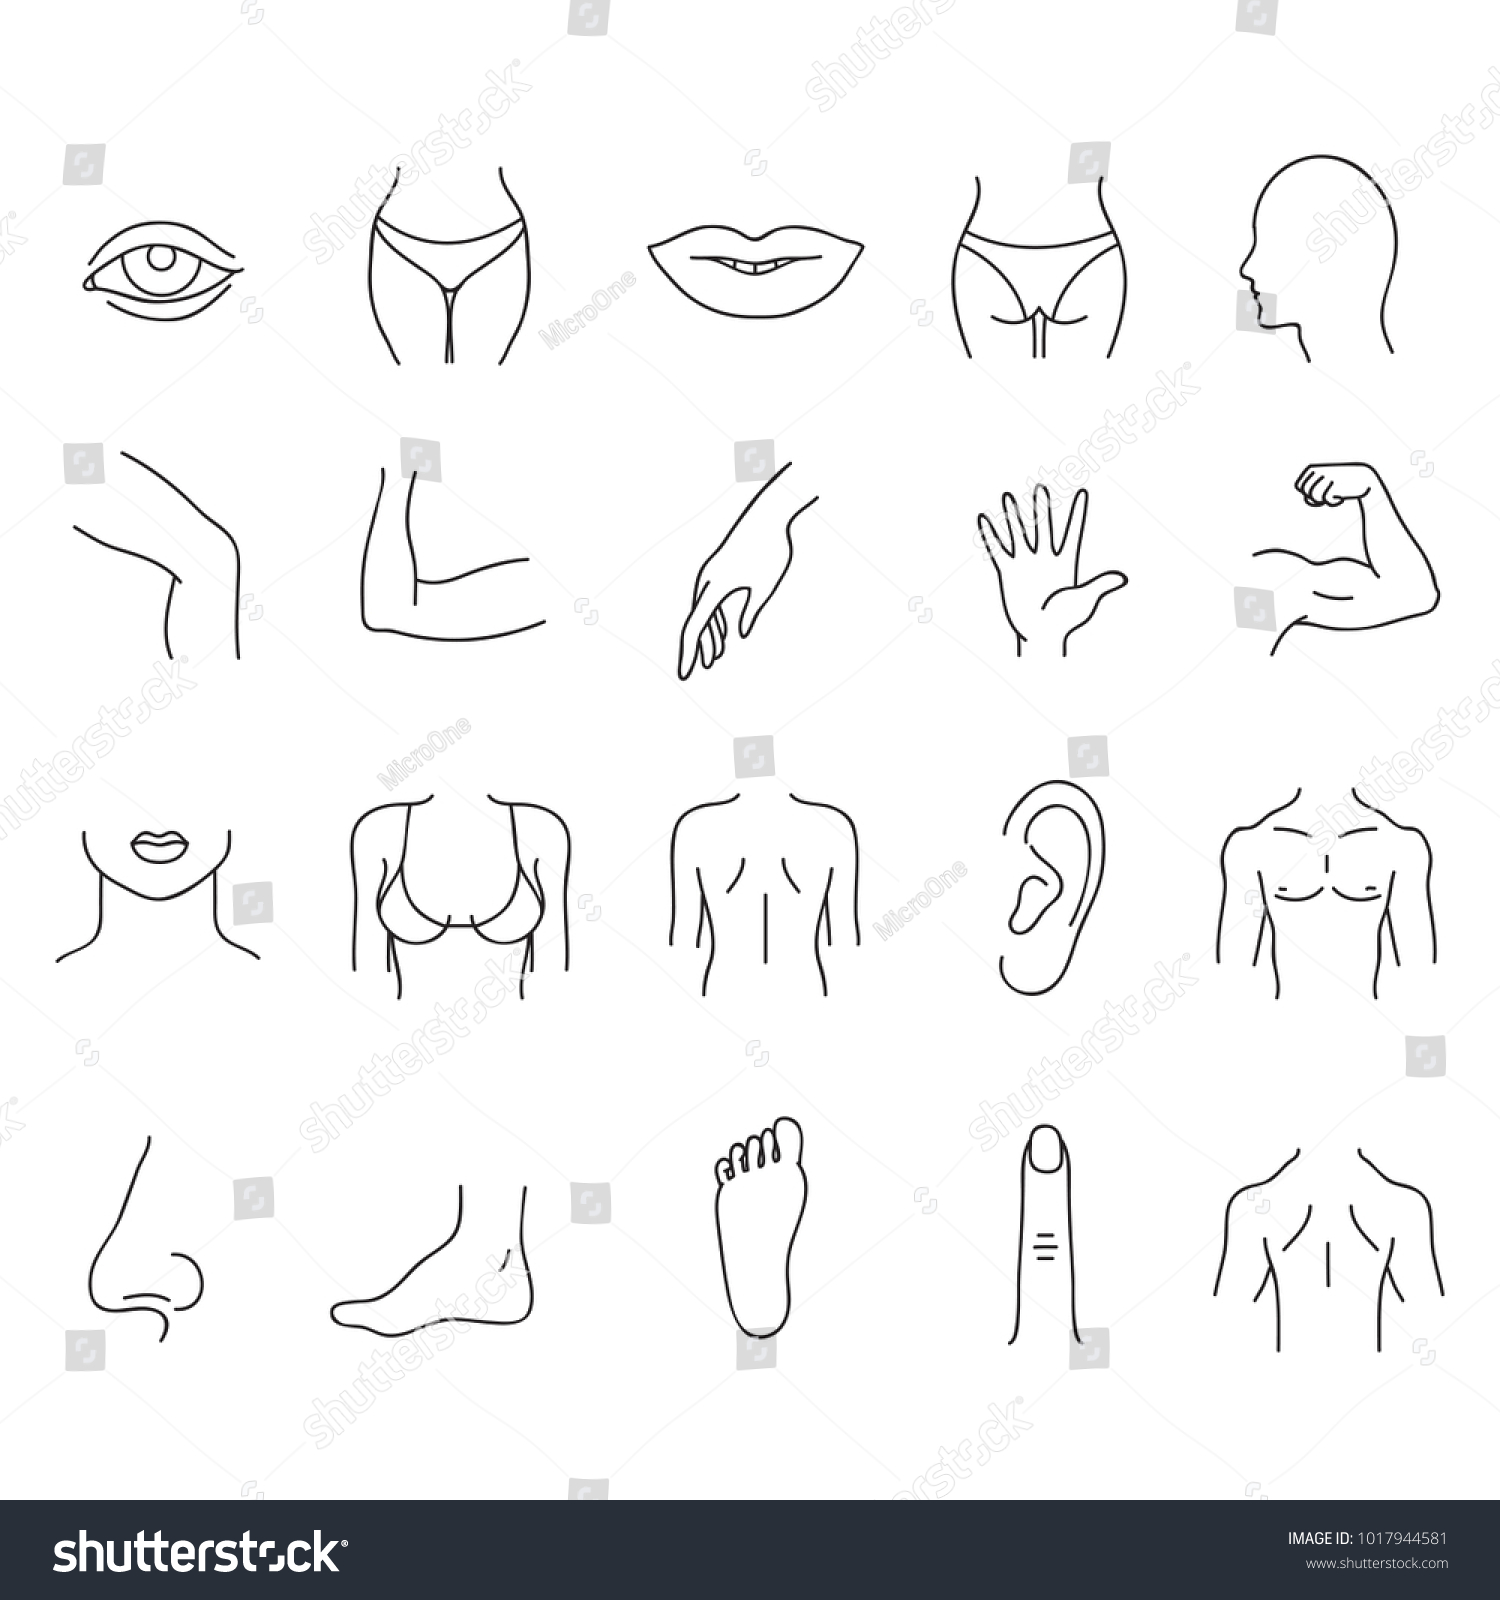 Line Human Male Female Body Parts Stock Vector (Royalty Free ...